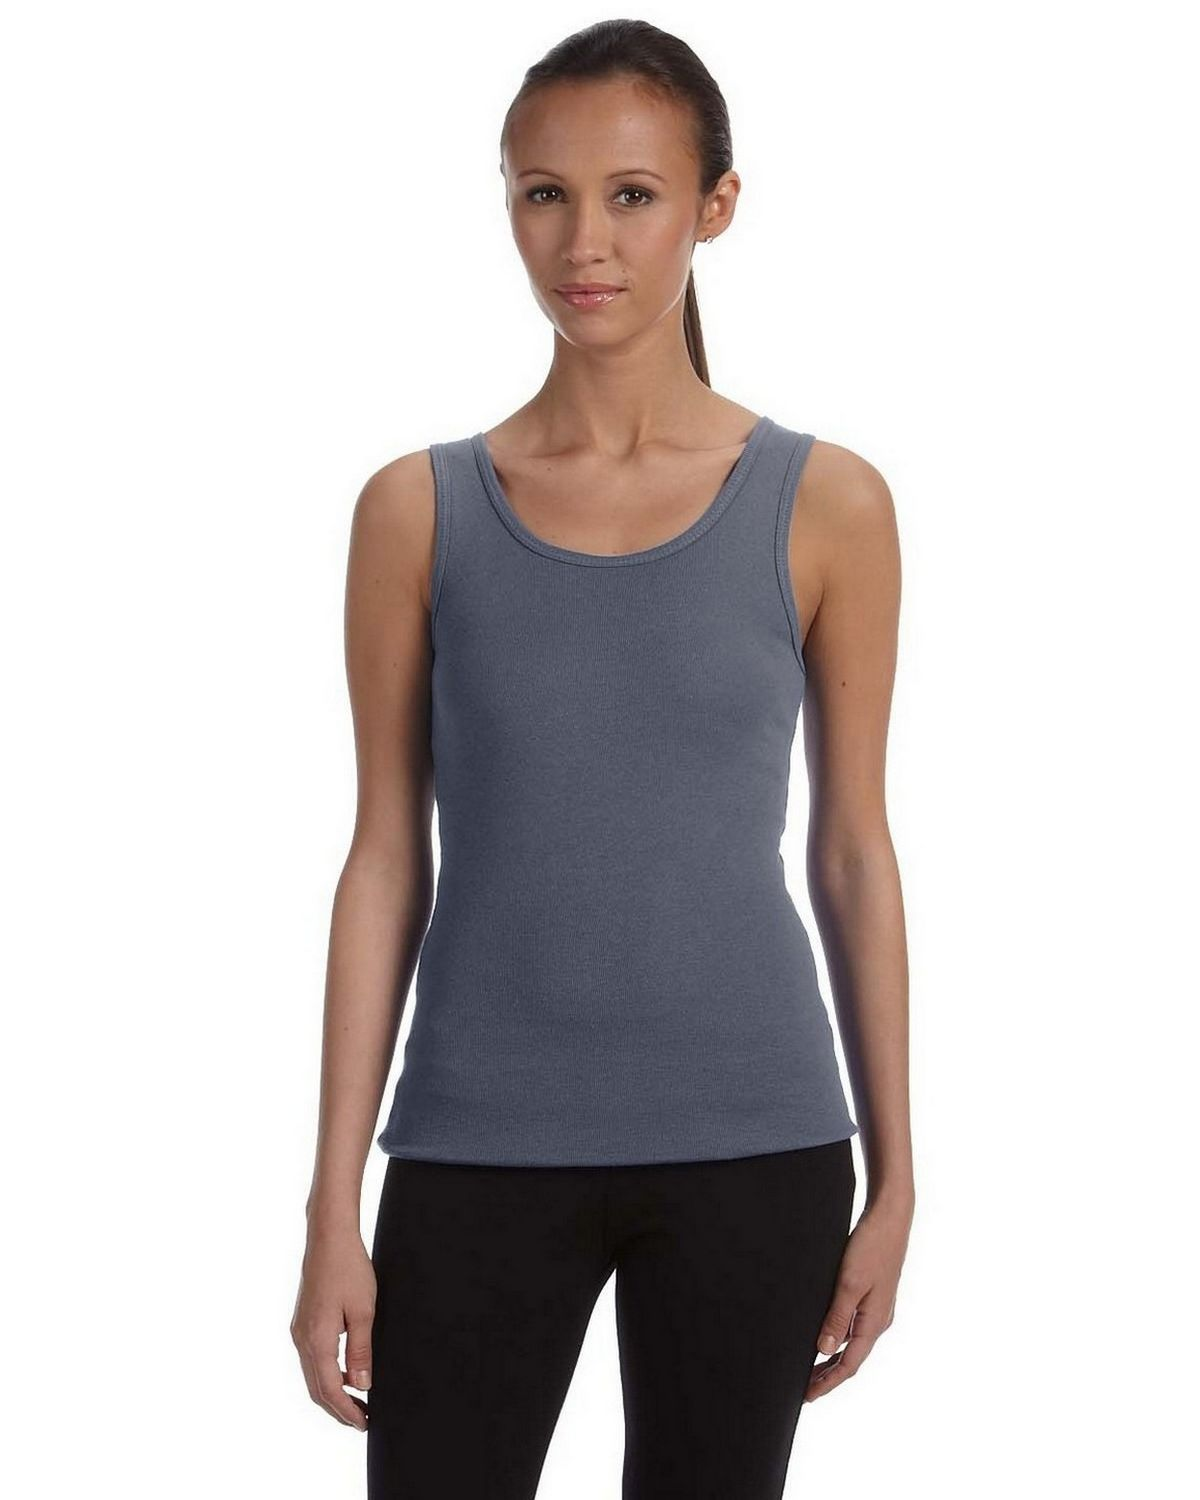 Bella + Canvas 1080 Ladies 1x1 Baby Rib Wide Strap Tank - Deep Heather - S 1080